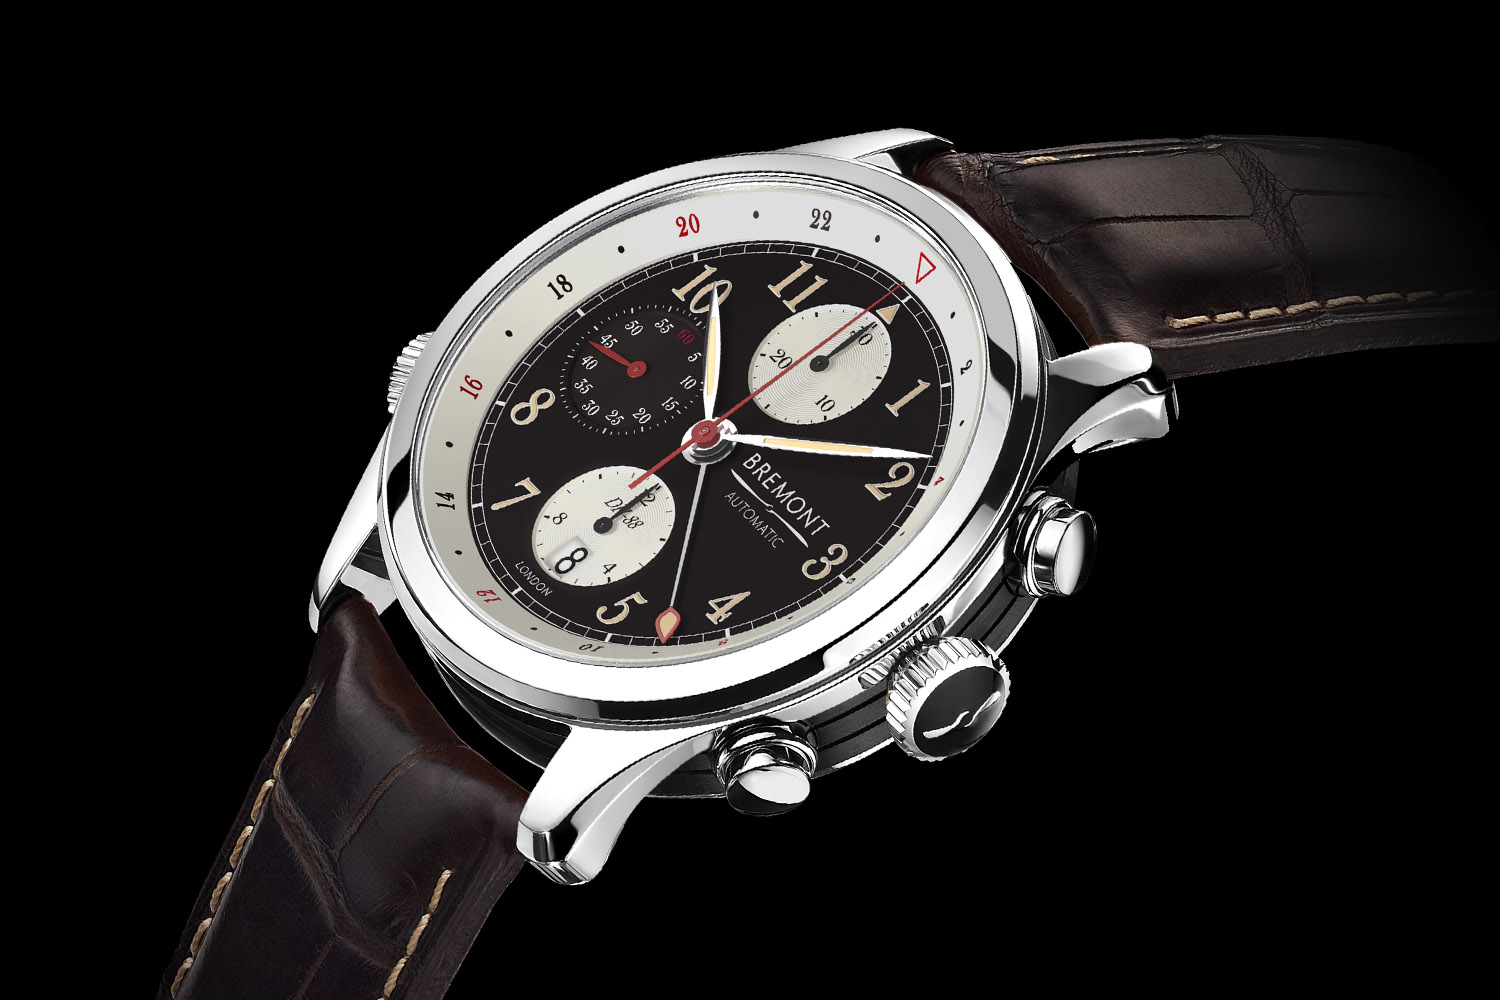 Introducing – Bremont DH-88 Comet Limited Edition Watch (specs & price)